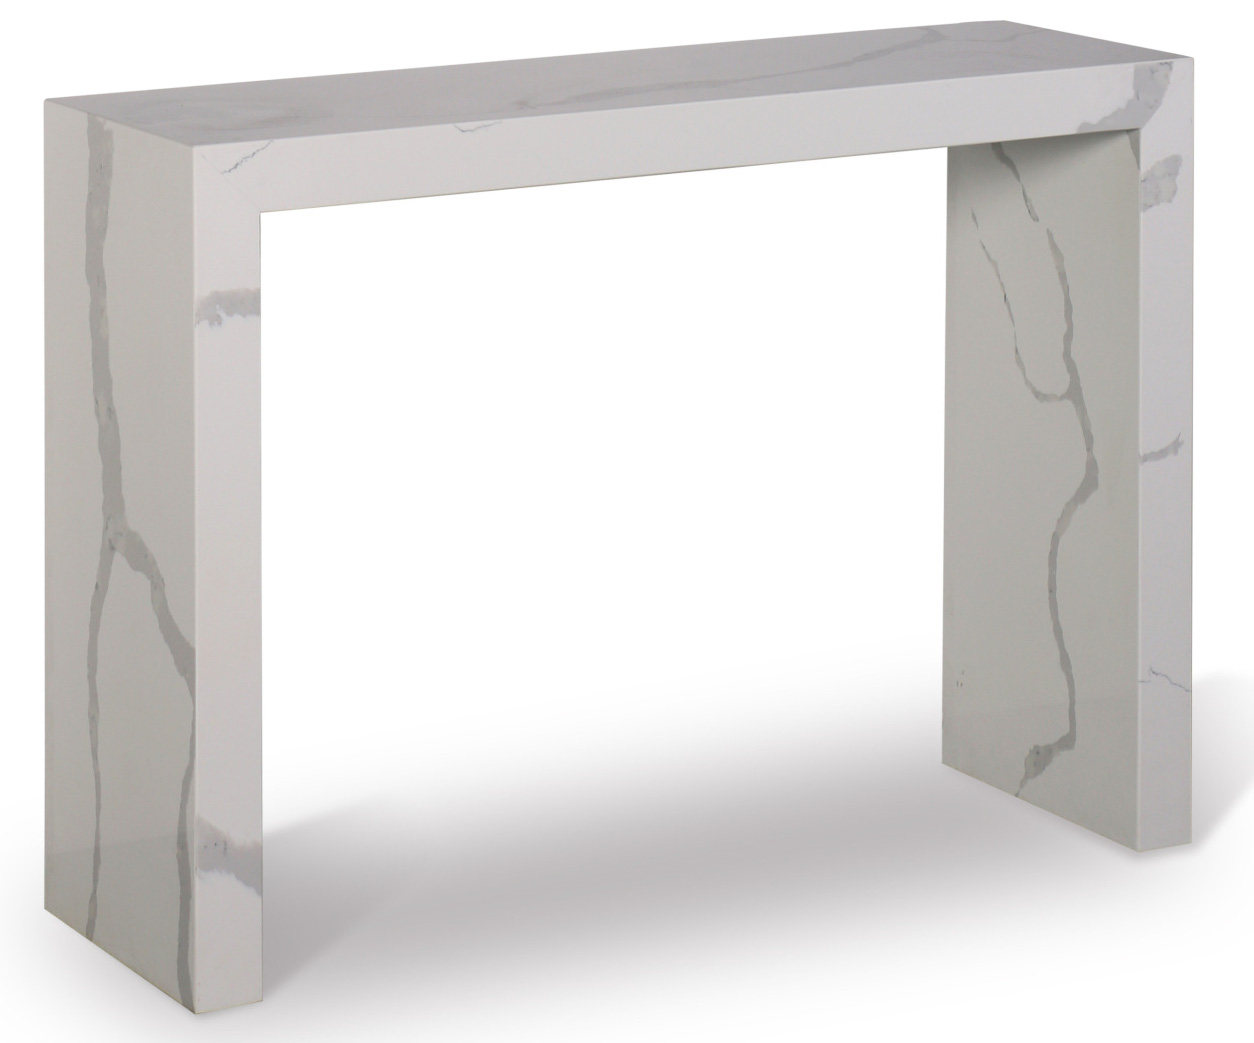 CONSOLE TABLE CT-215